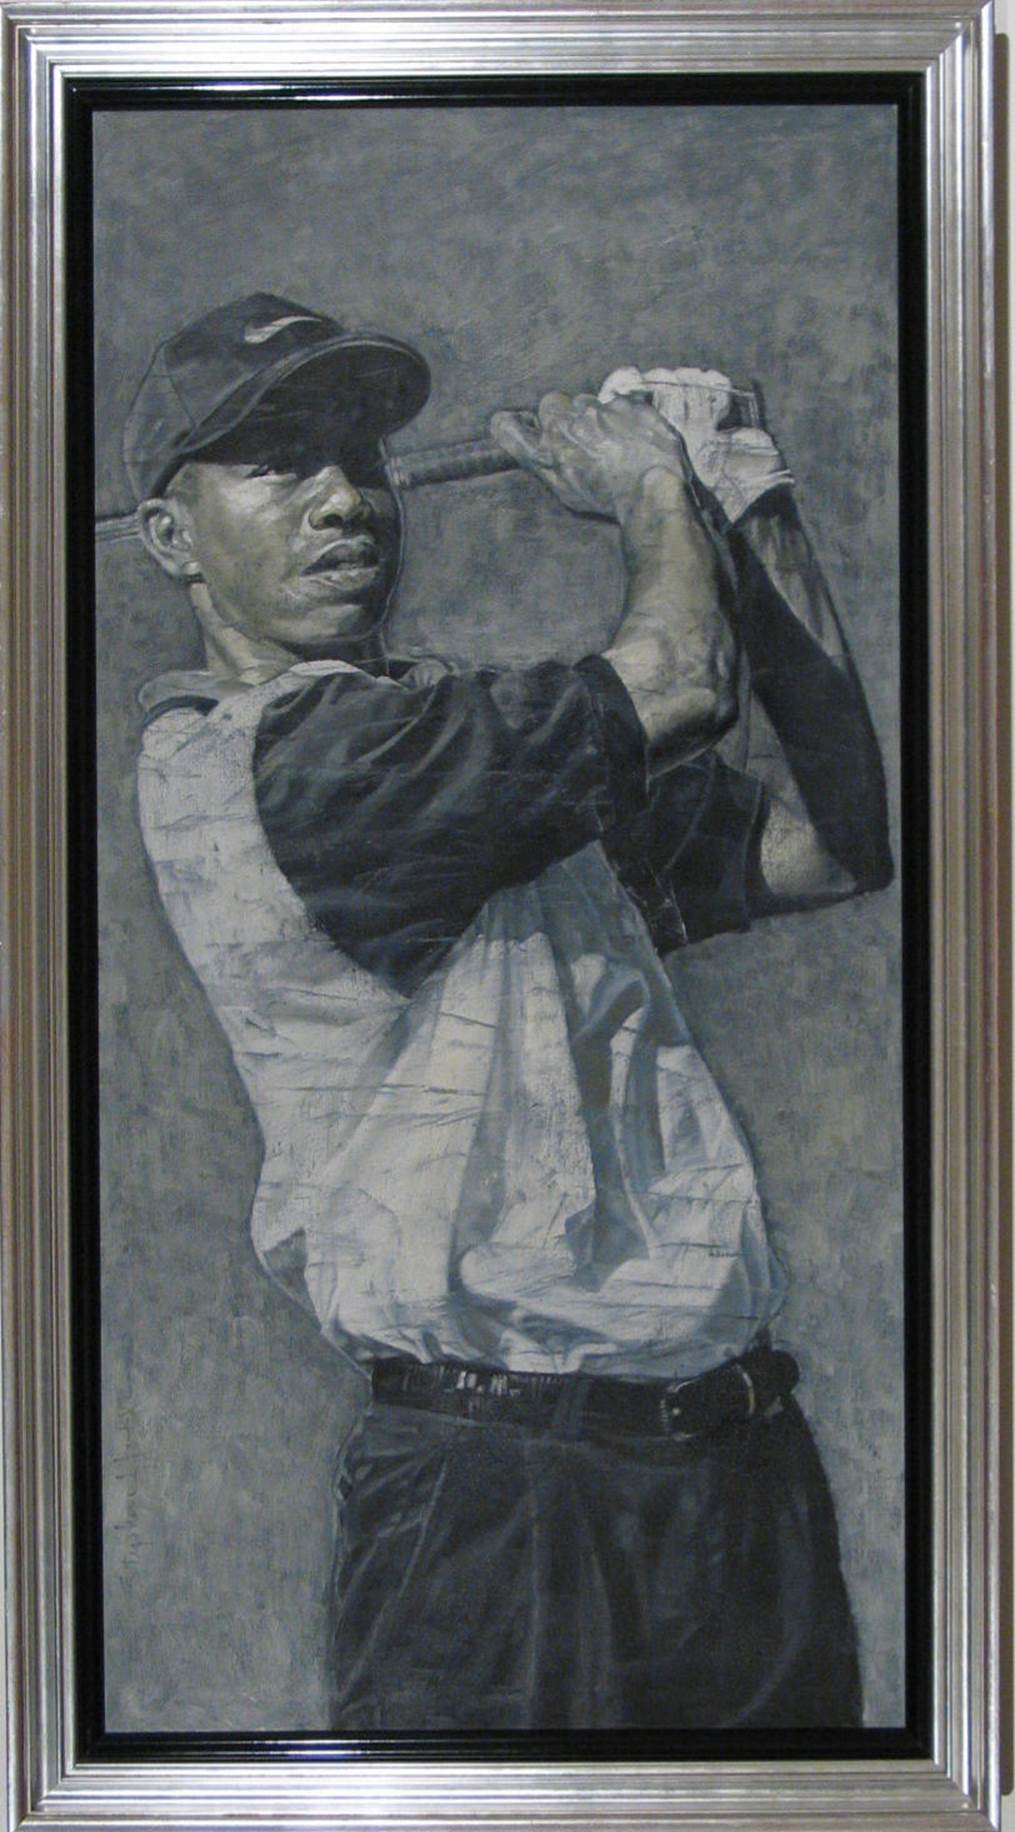 Stephen Holland Tiger Woods (Framed)